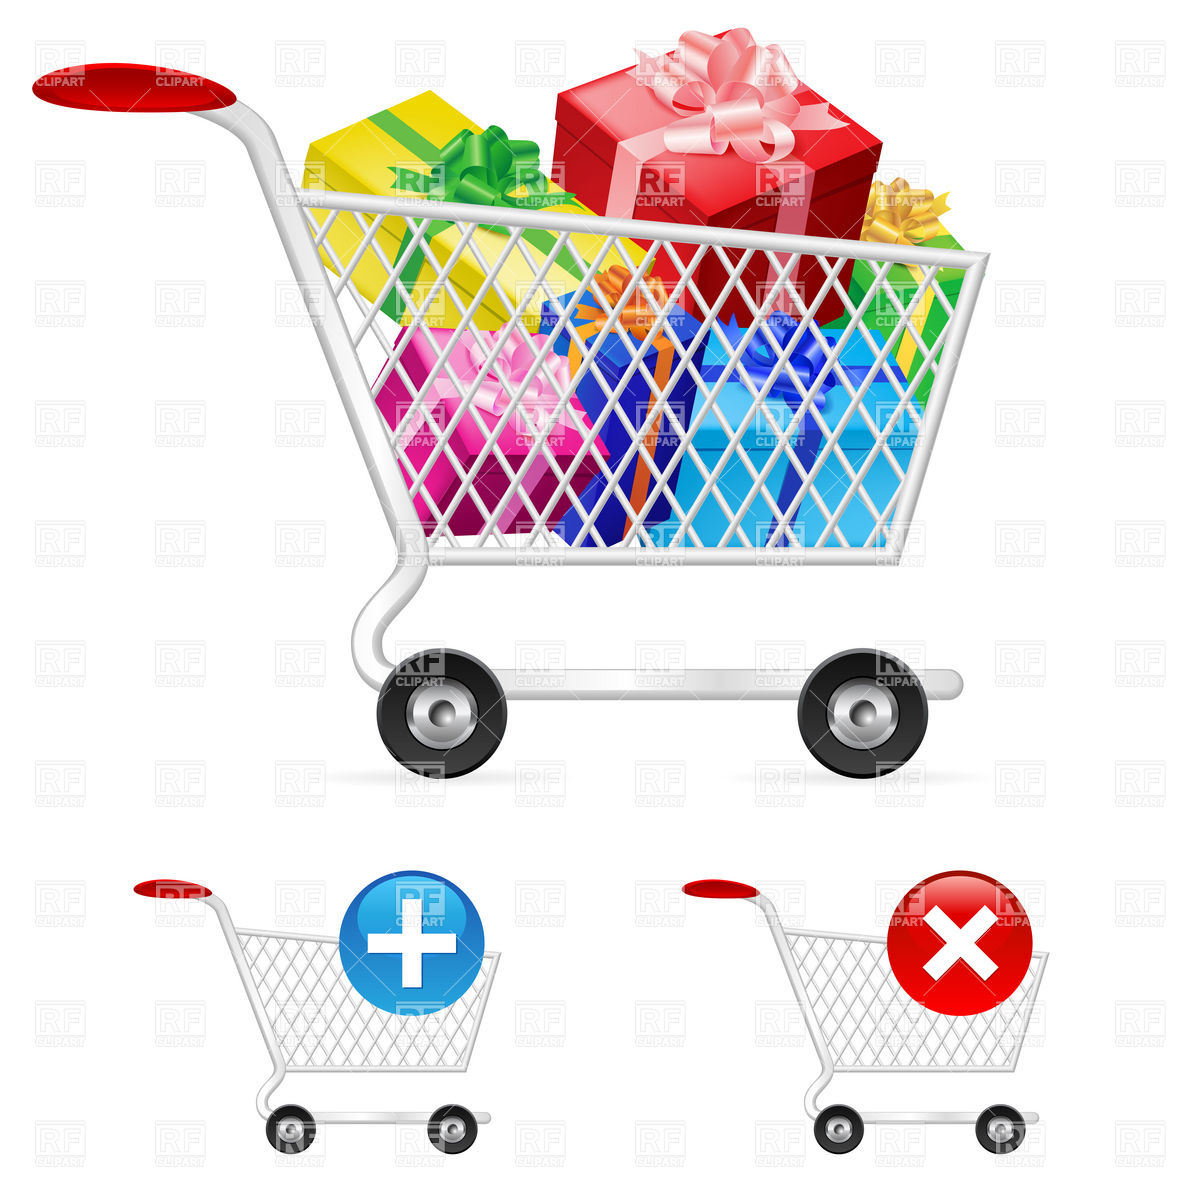 Shopping cart full gifts Vector Image #8053.